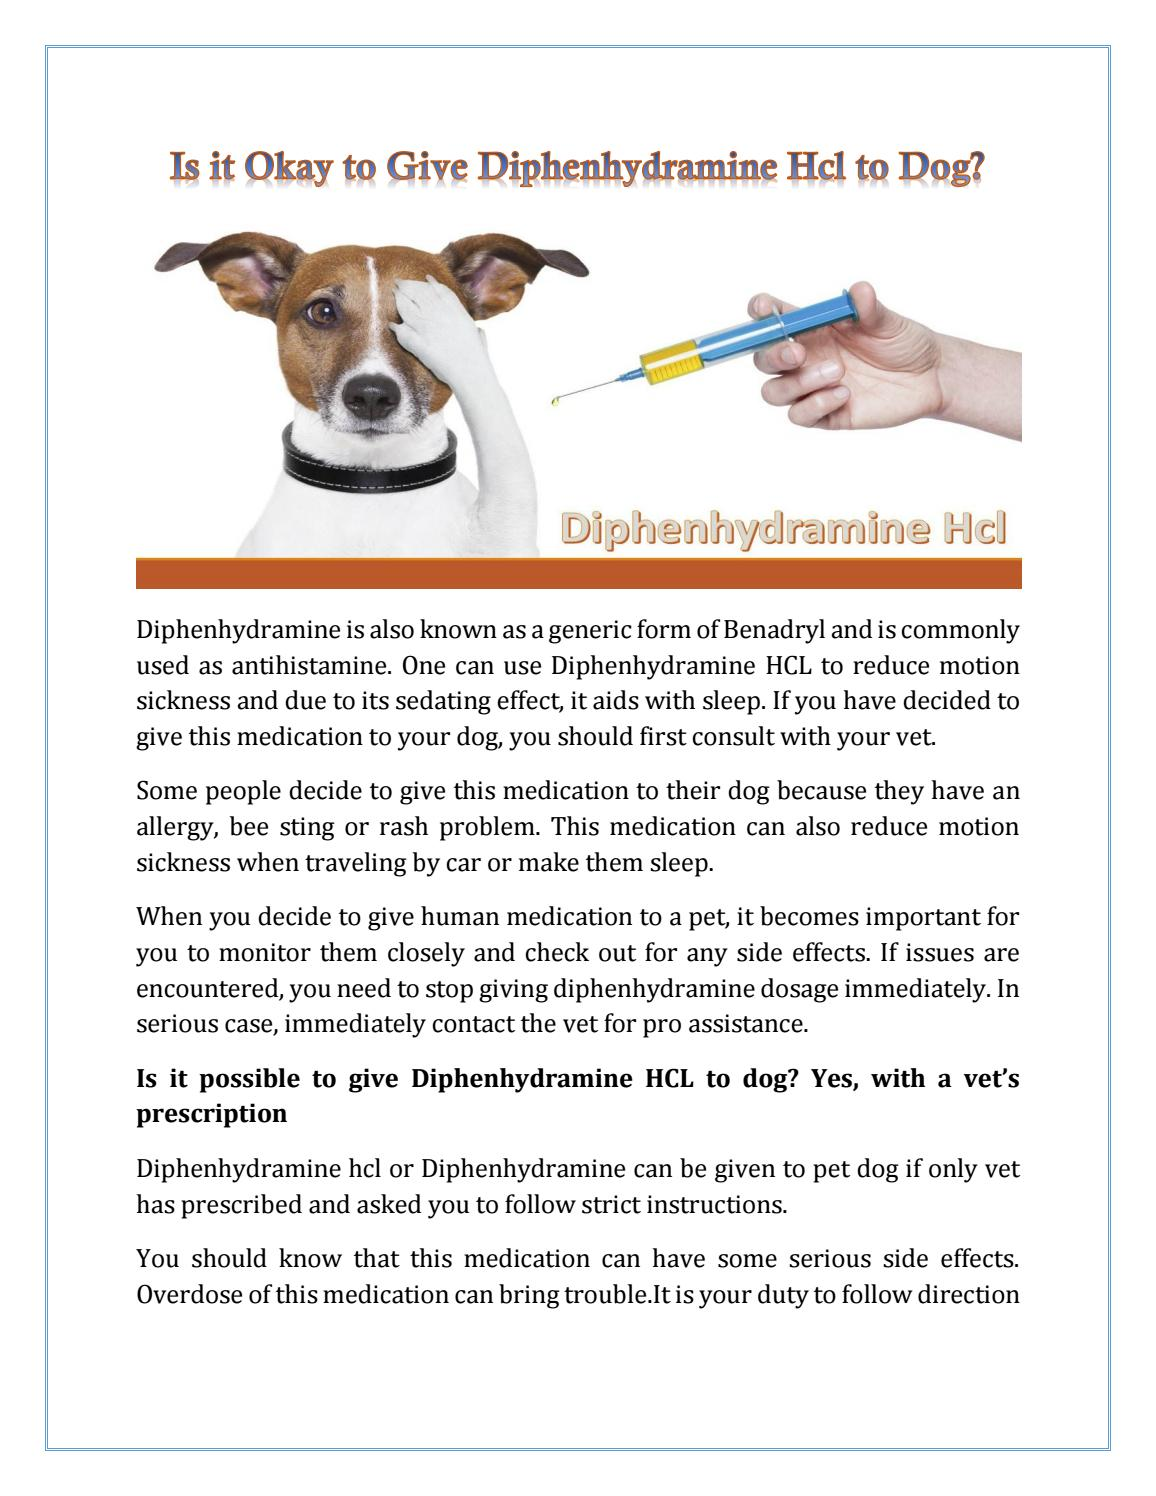 Is it okay to give diphenhydramine hcl to dog? by Mahrshee